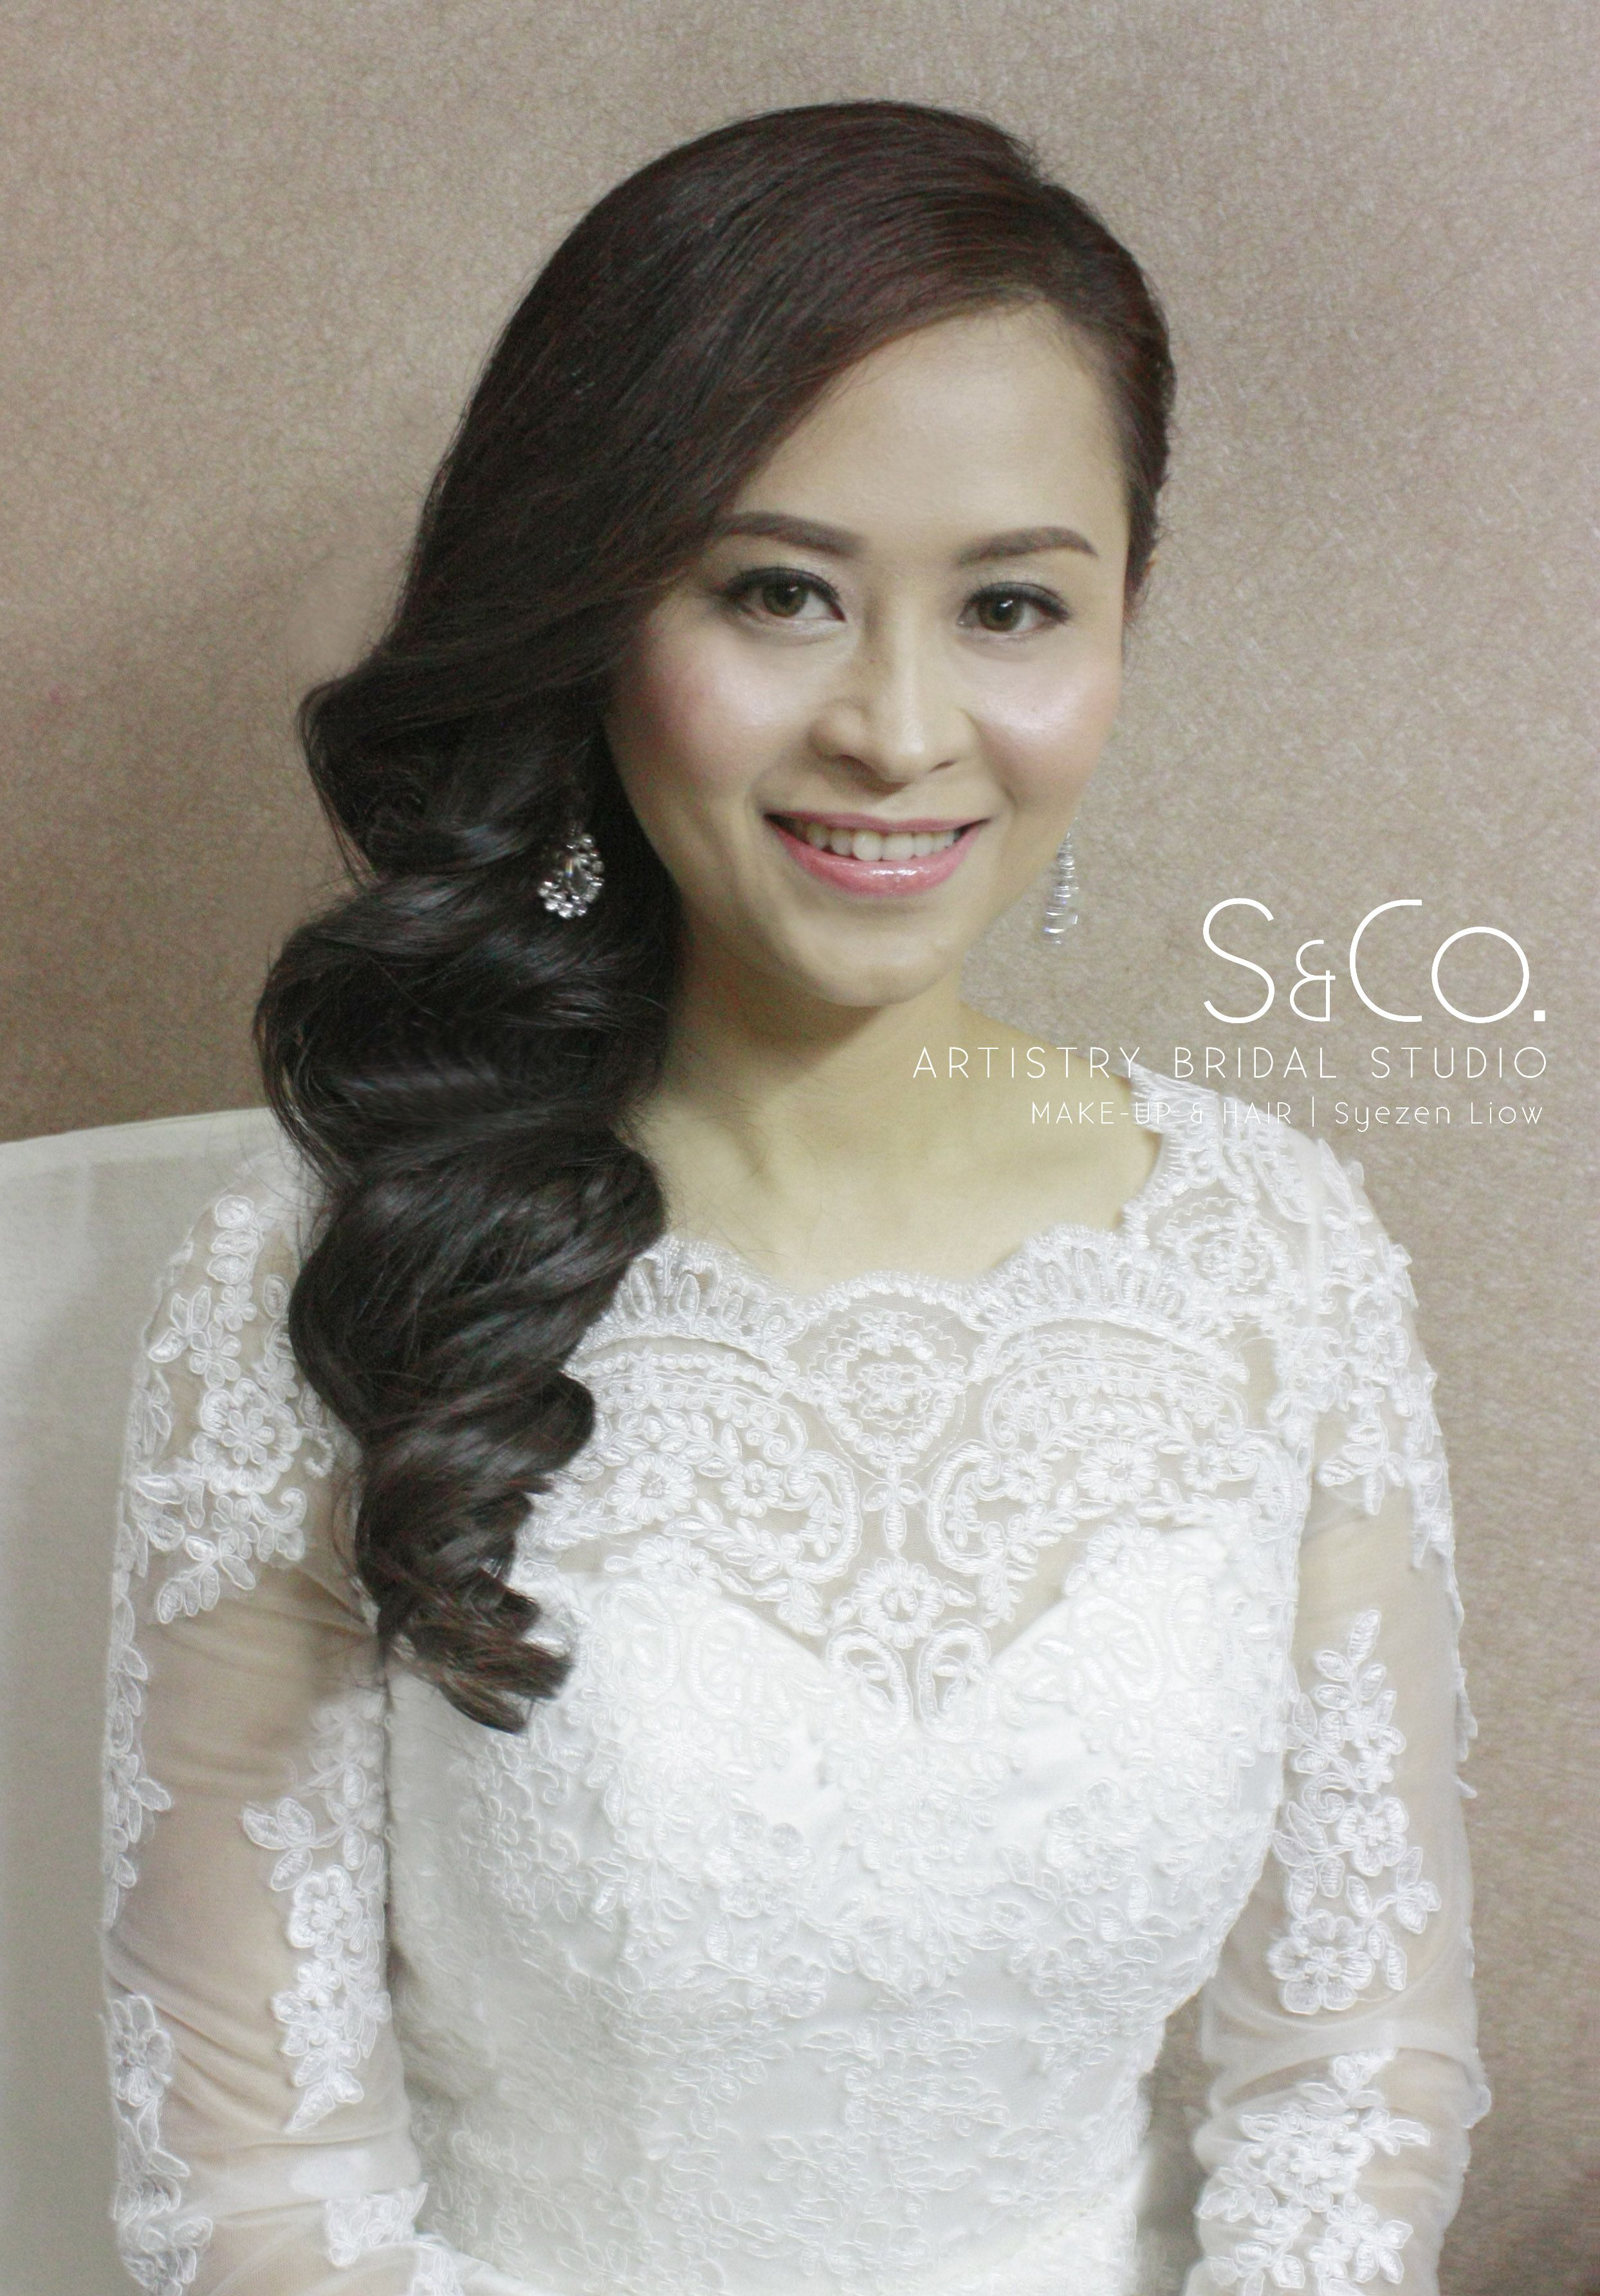 Bridal Hair Waving Hairstyle | S & Co. Real Bride | Pinterest ...